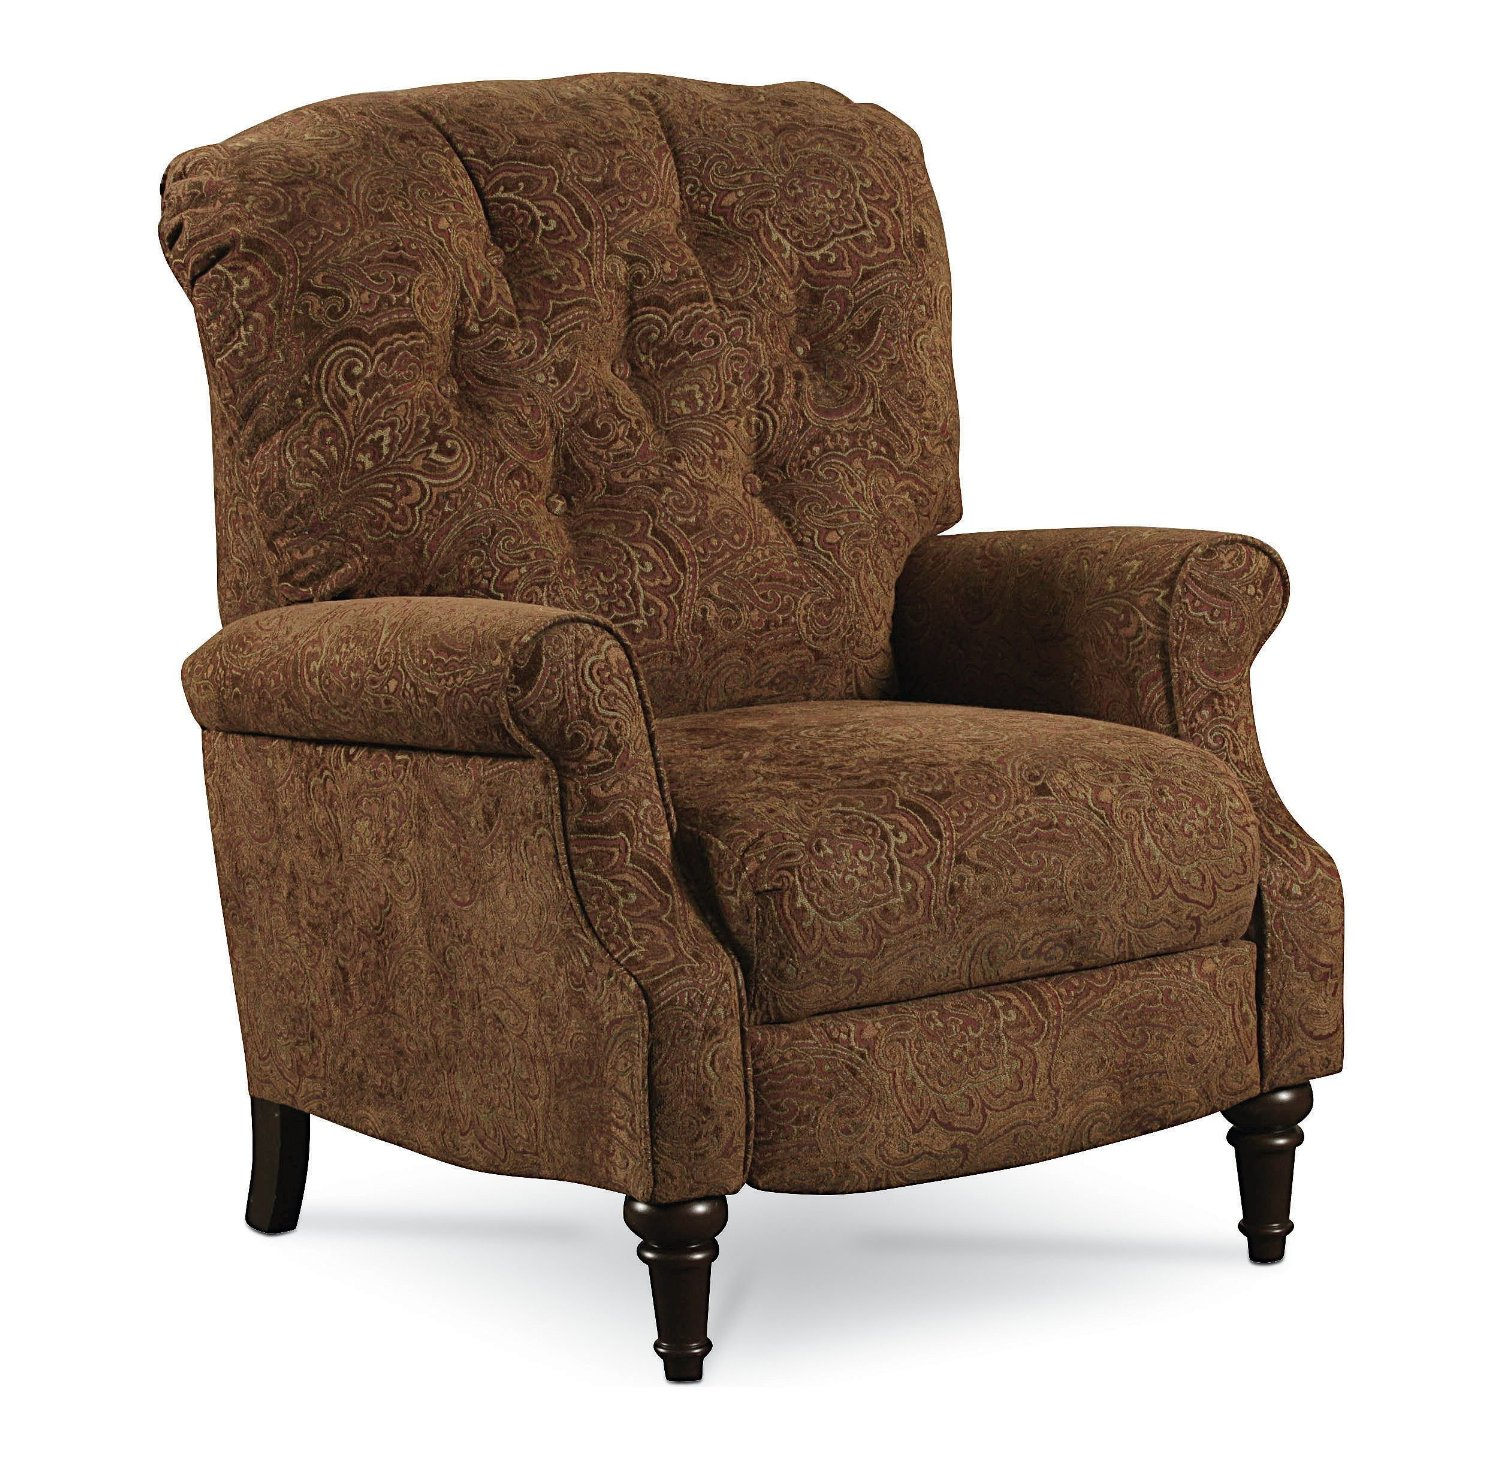 best the chairs chair covers under $1 top 5 high leg fabric recliners recliner